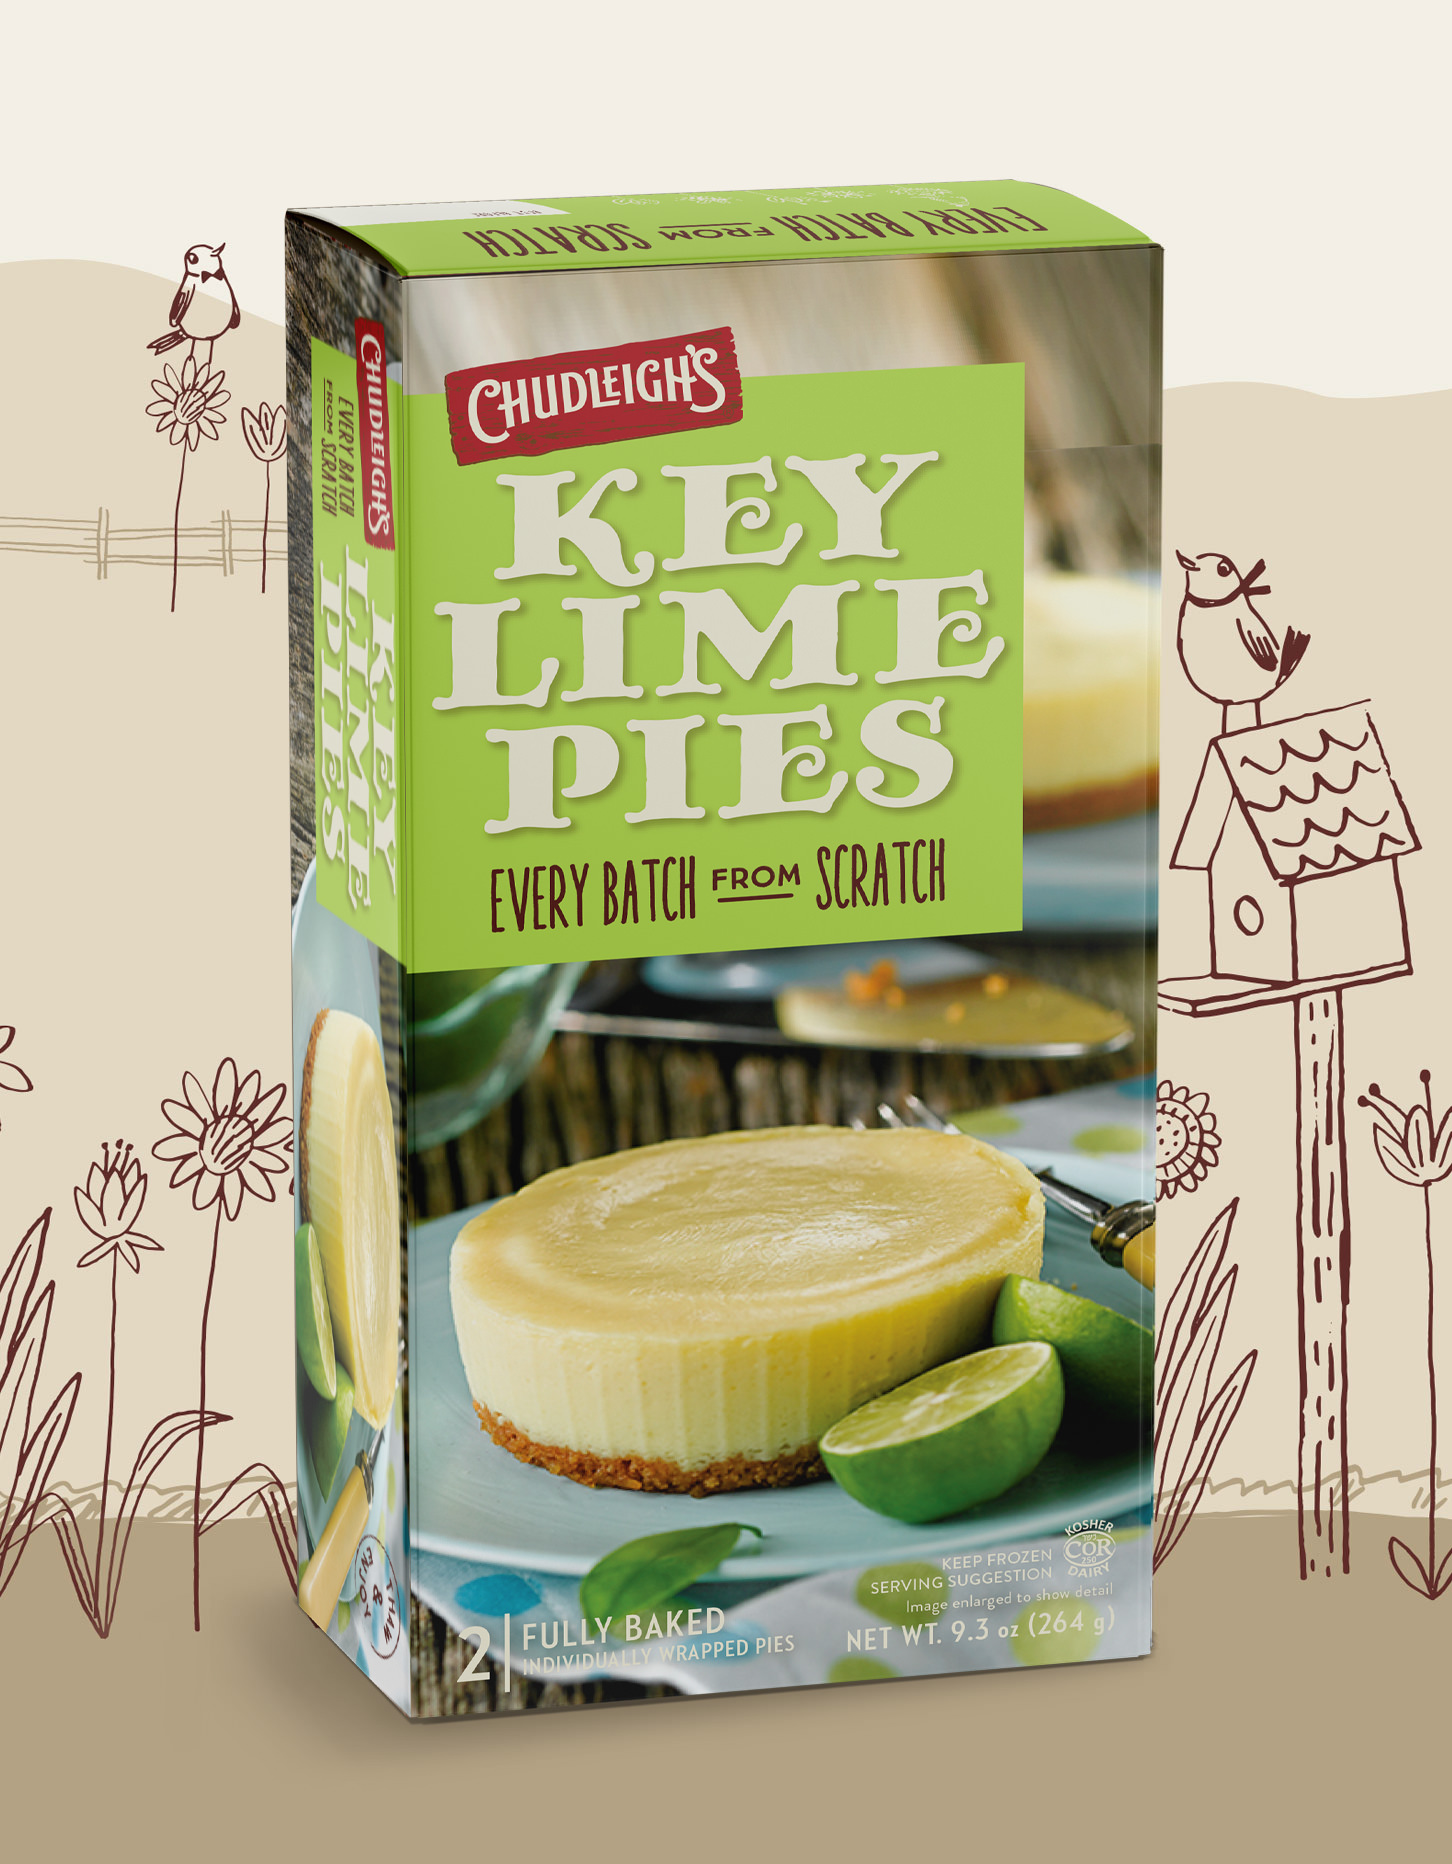 Chad Roberts Design Ltd. Chudleigh's Key Lime Pies Package Design